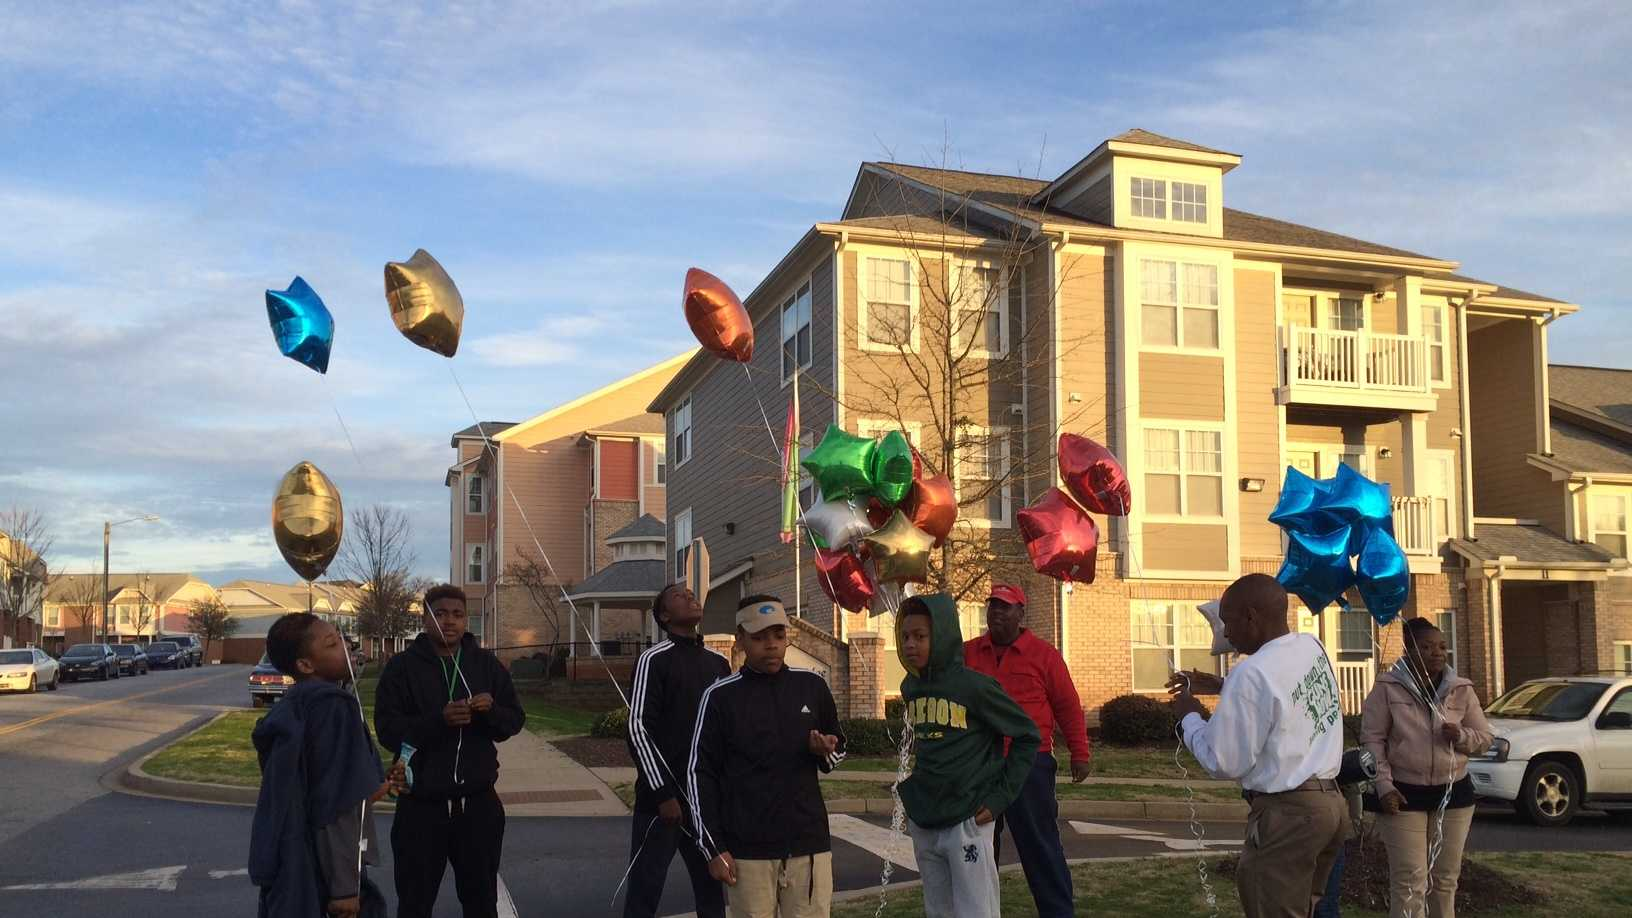 Local group releases balloons in memory of Cobey Smith.